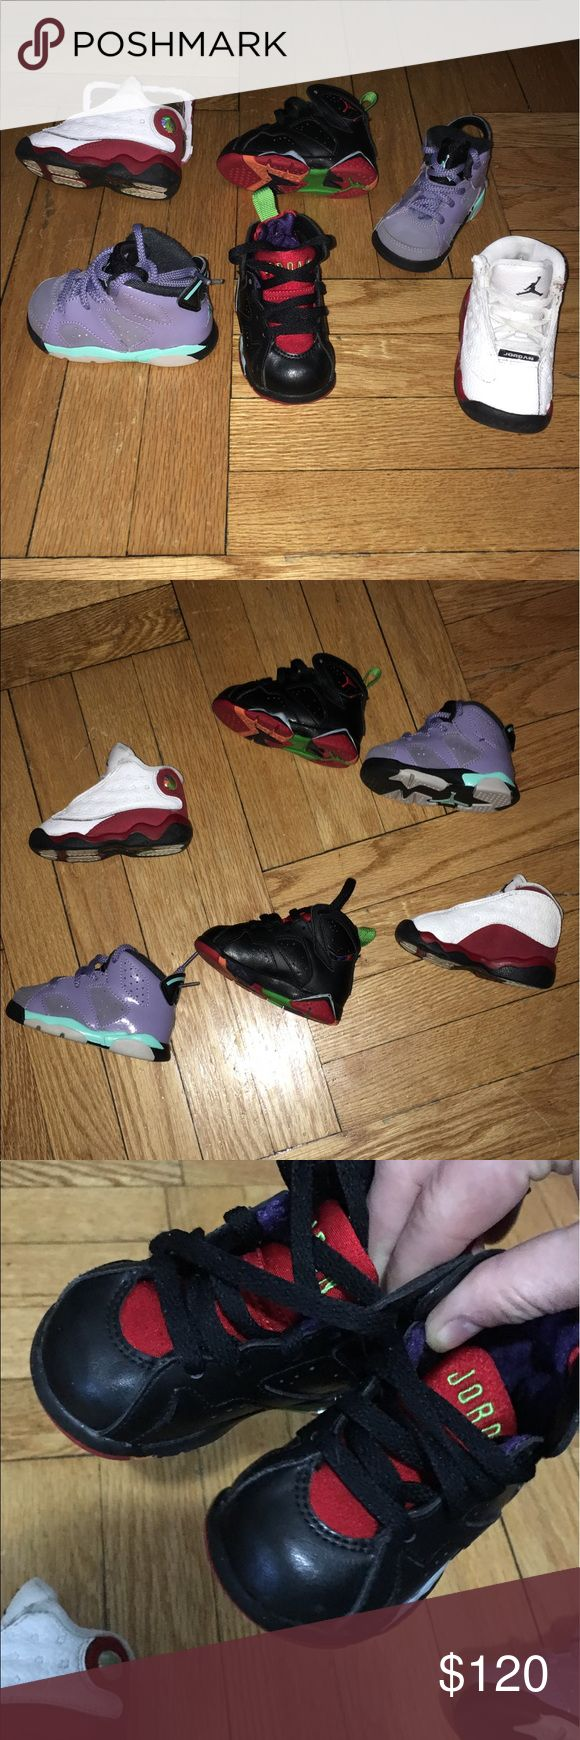 ⏳kids air Jordan Any2 Any 2 as u see all in great condition.. 4c.. any 2 ur choice the black are almost new worn not even Twice the white and red was purchased when they first released they are the old school original great quality back in the day Jordan's for those who know and the purple are suede and worn few times but still in great condition.. ea pair was over 60$ Air Jordan Shoes Sneakers